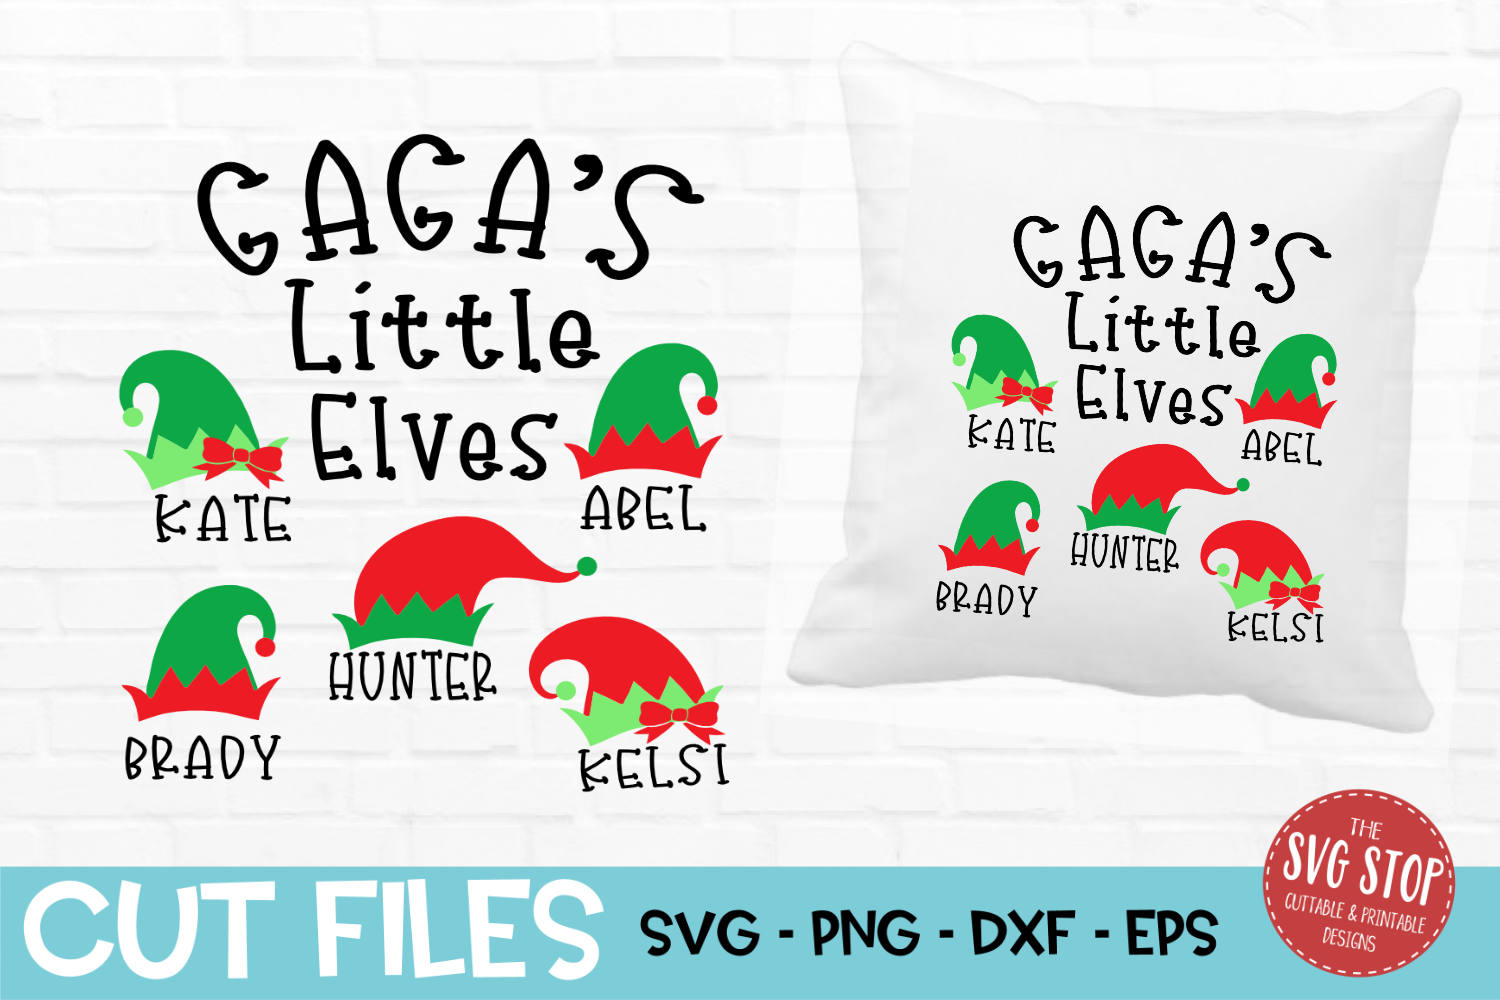 Gaga Little Elves Christmas SVG, PNG, DXF, EPS example image 1